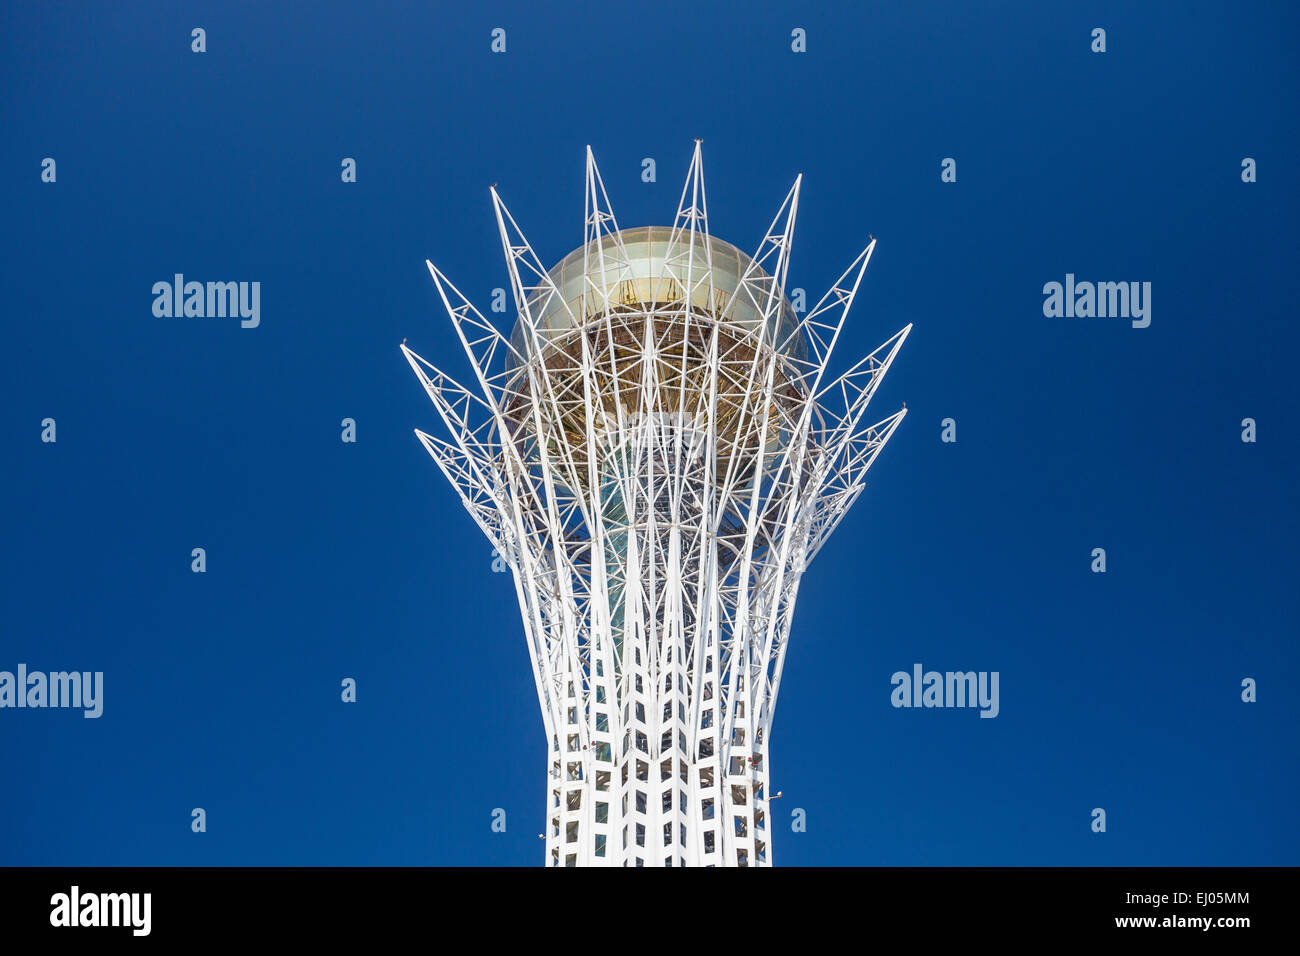 Astana, Bayterek, City, Kazakhstan, Central Asia, Monument, New City, Nurzhol, architecture, no people, skyline, - Stock Image